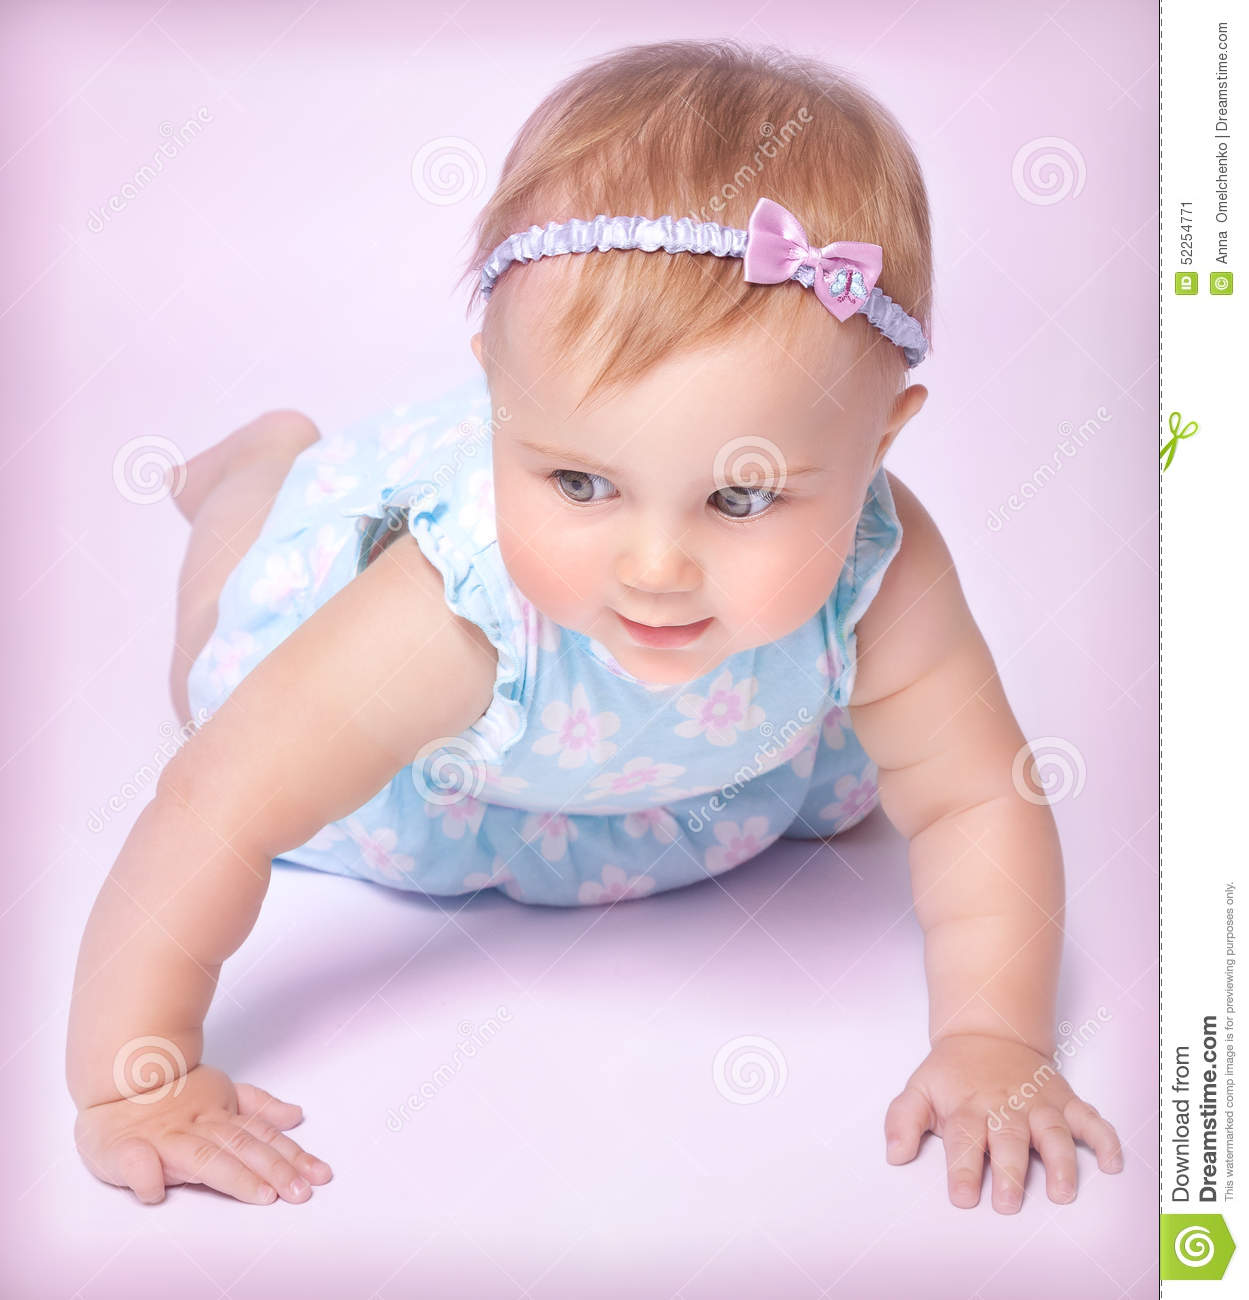 Cute Little Baby Girl Stock Photo Image 52254771